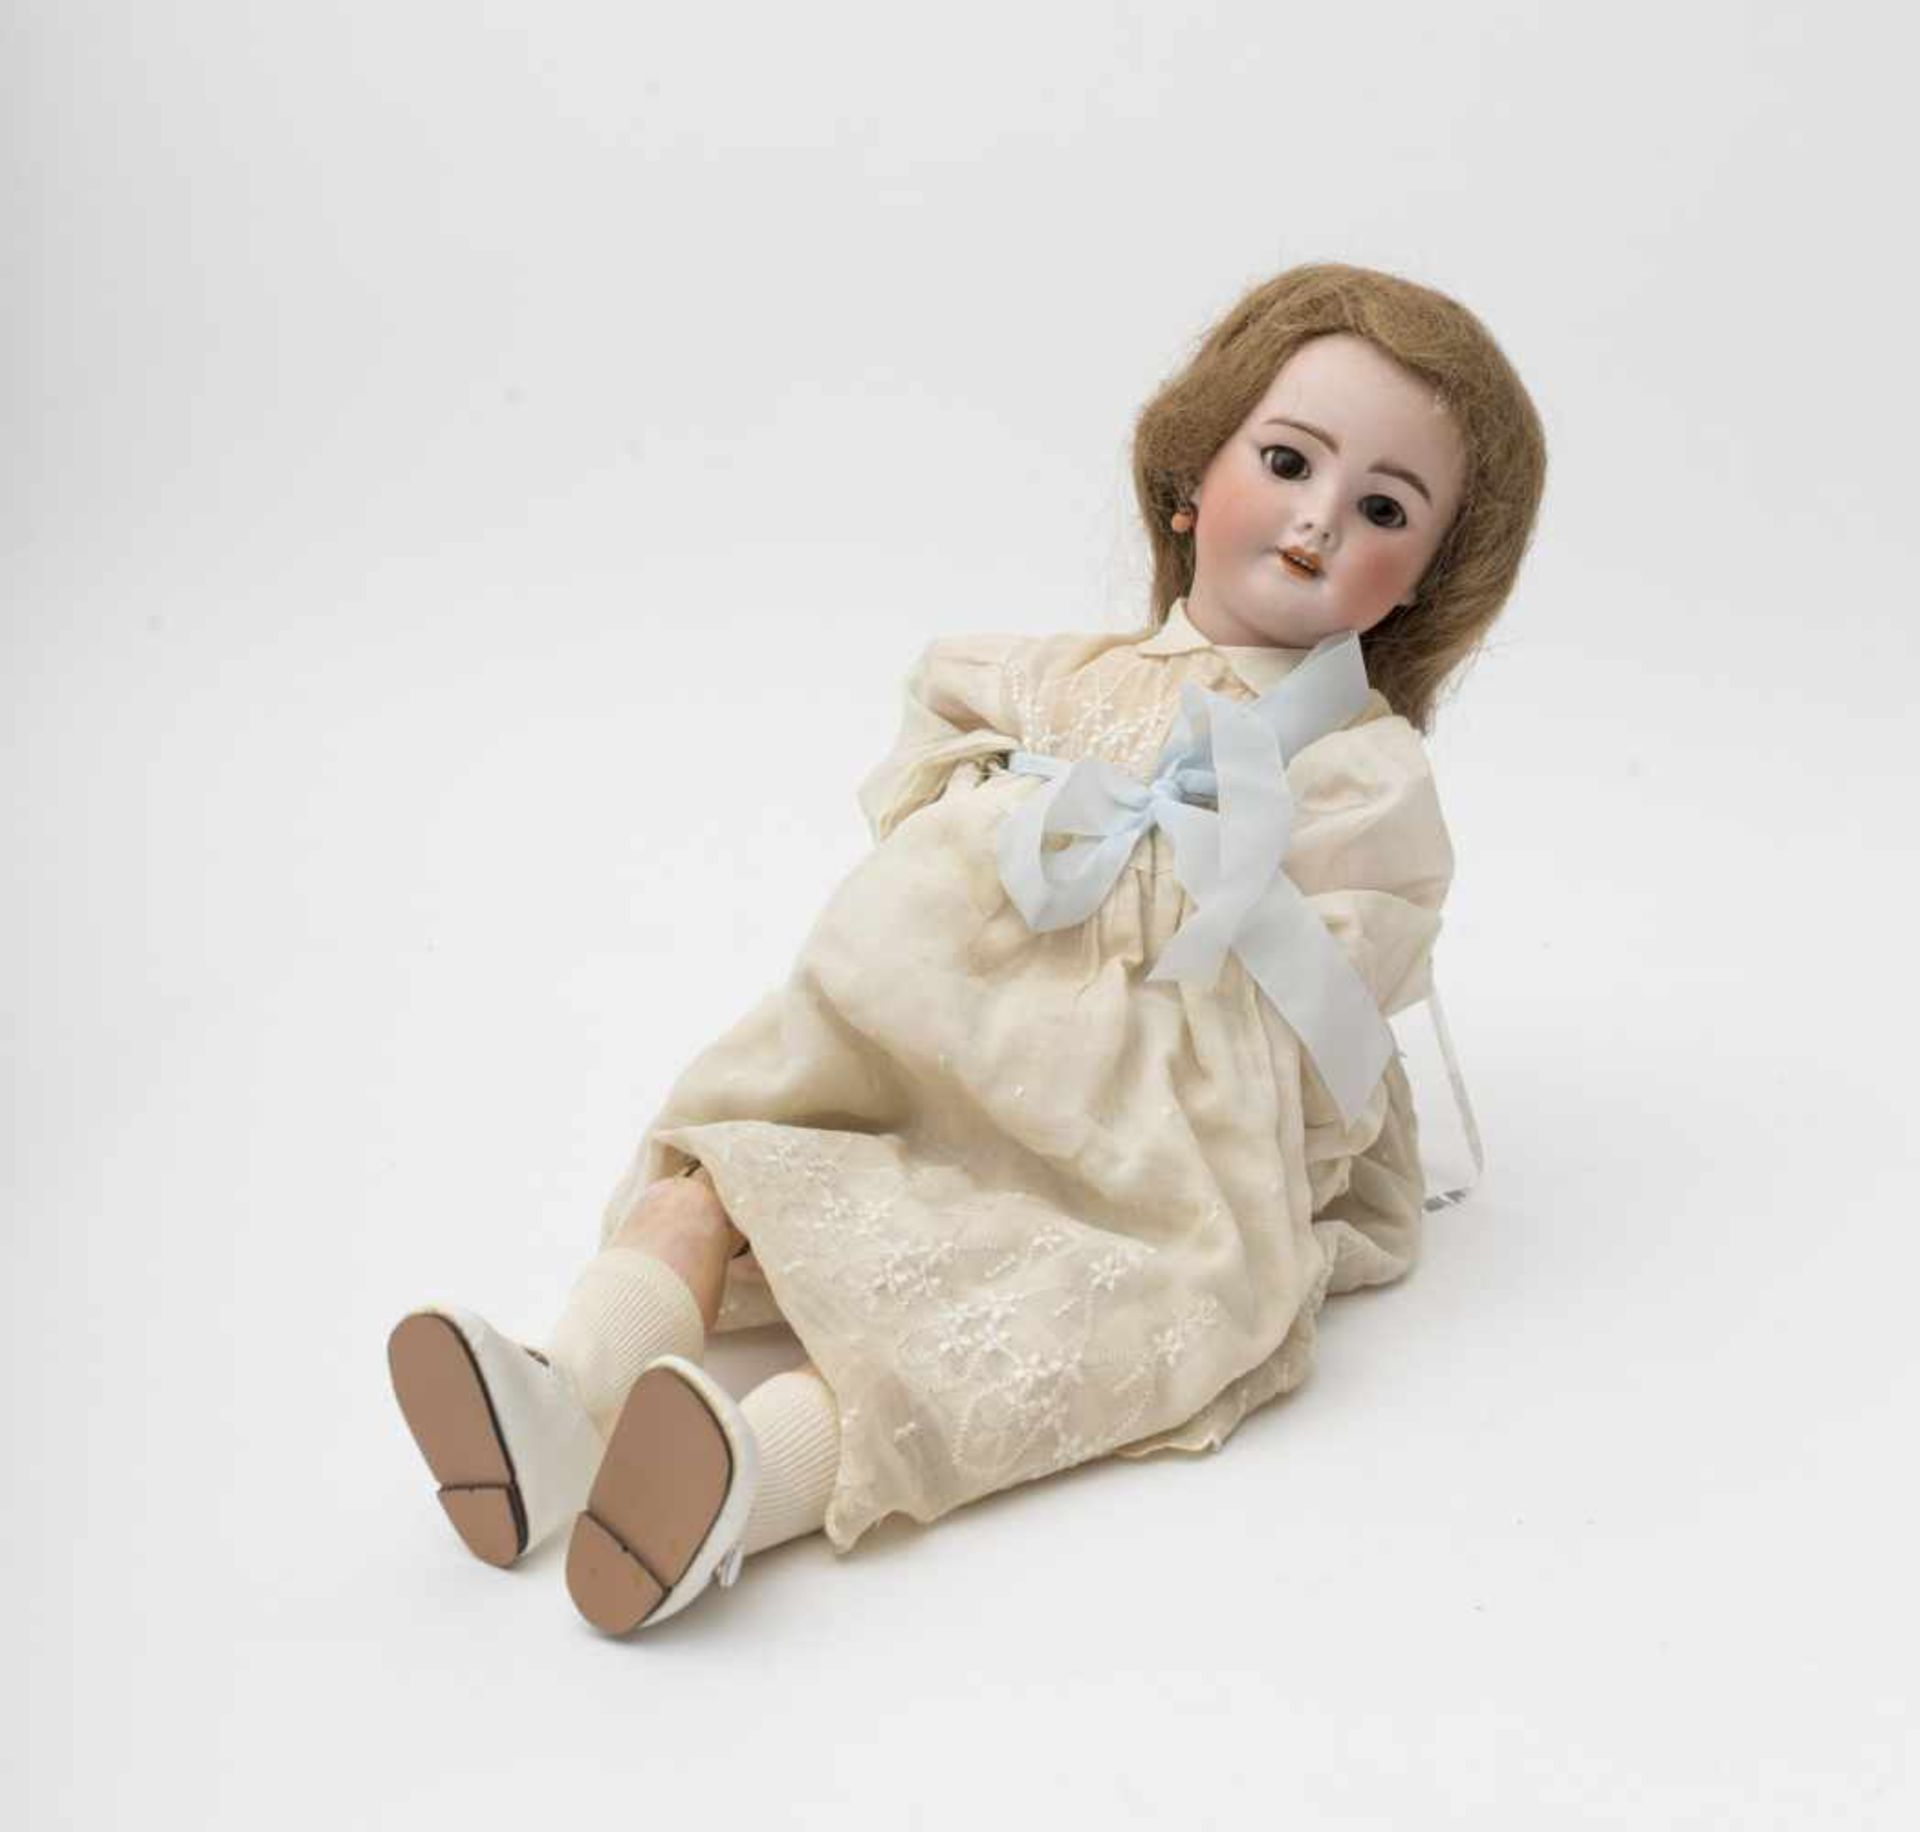 """Doll With biscuit head, open mouth, branded """"SFBJ 301 PARIS"""", size 8, brown sleeping eyes, walking"""